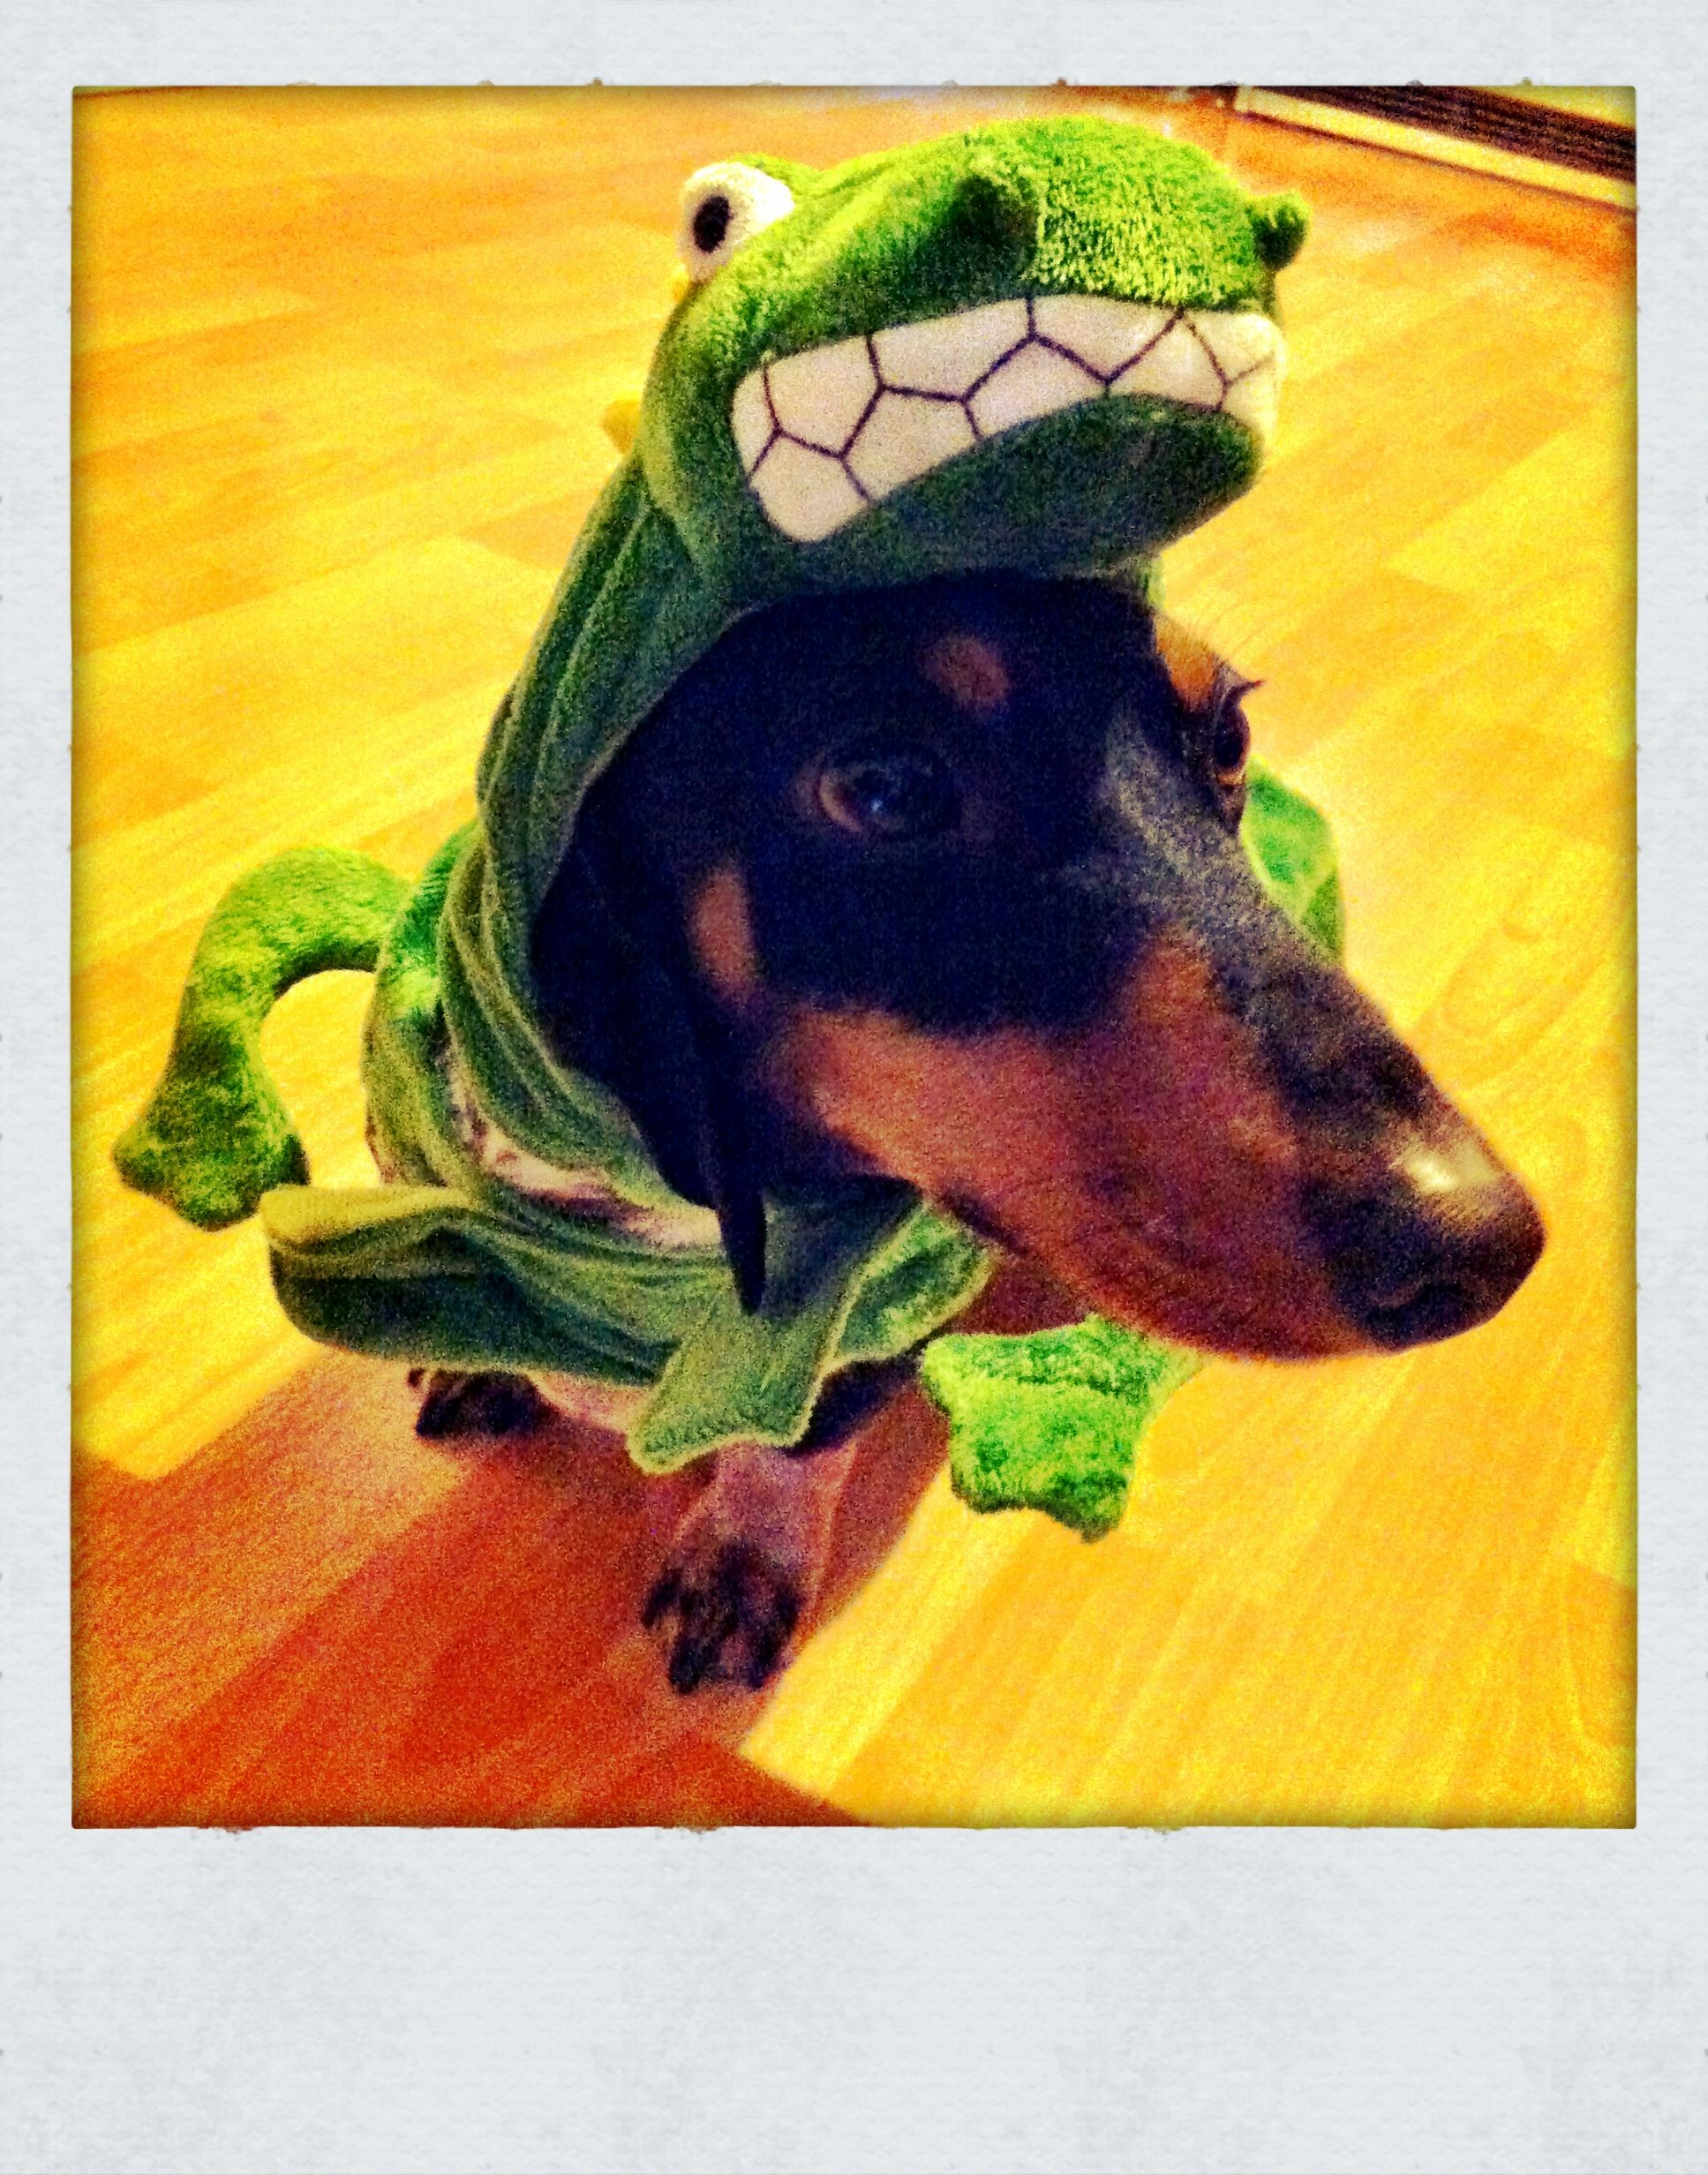 It S A Drackel Photo By C Auler Weiner Dog Dachshund Dogs Of The World